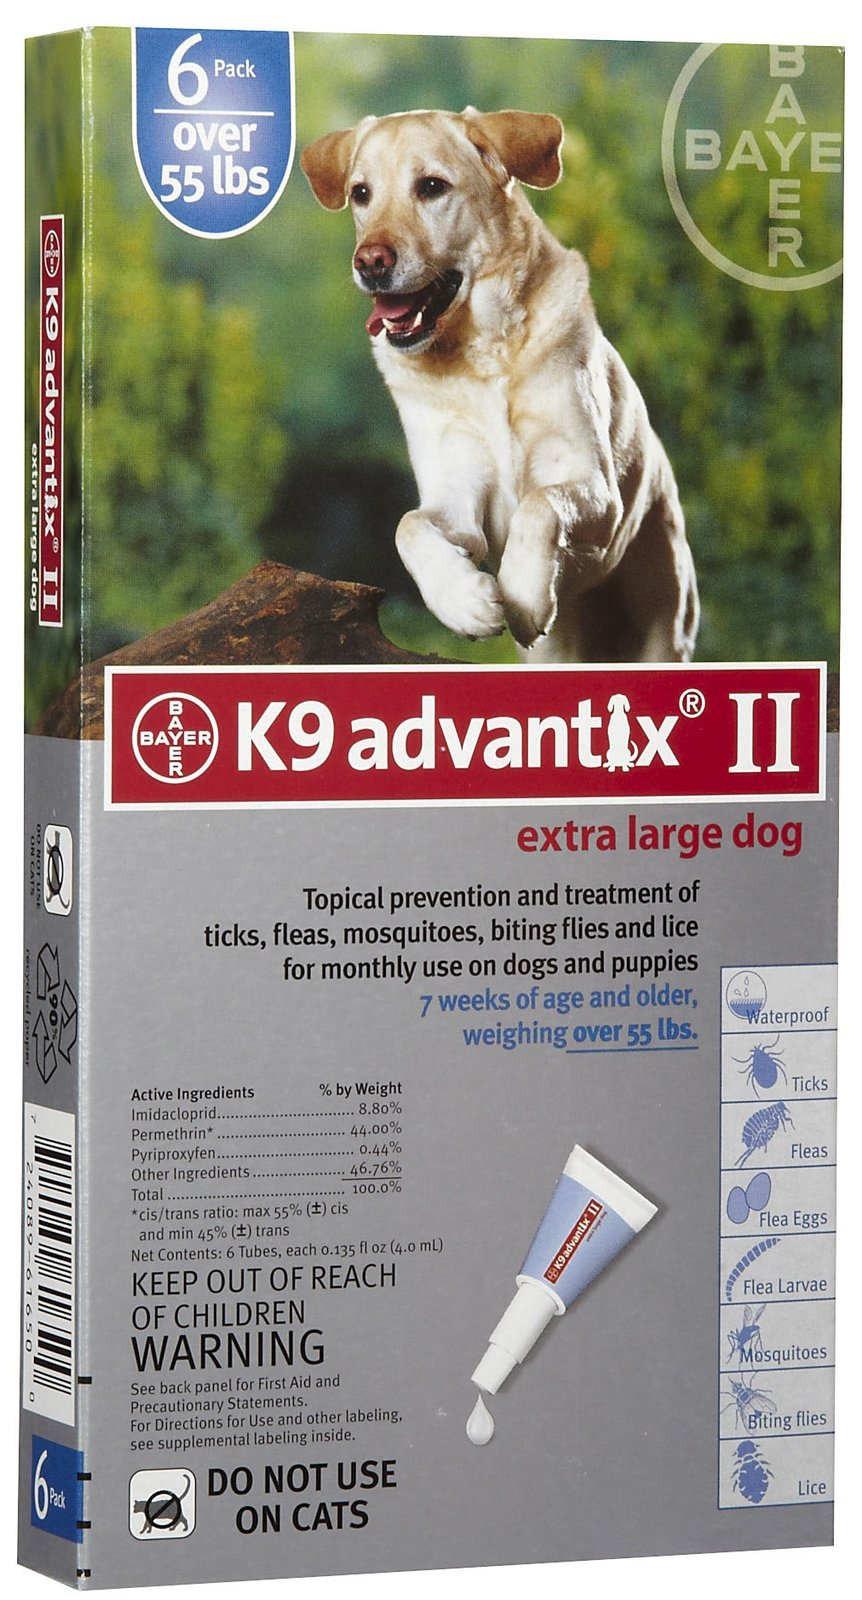 Advantix II K9 Blue - 6-Month Treatment for Extra Large Dogs Over 55 lbs -- 6 Tubes by K9 Advantix II